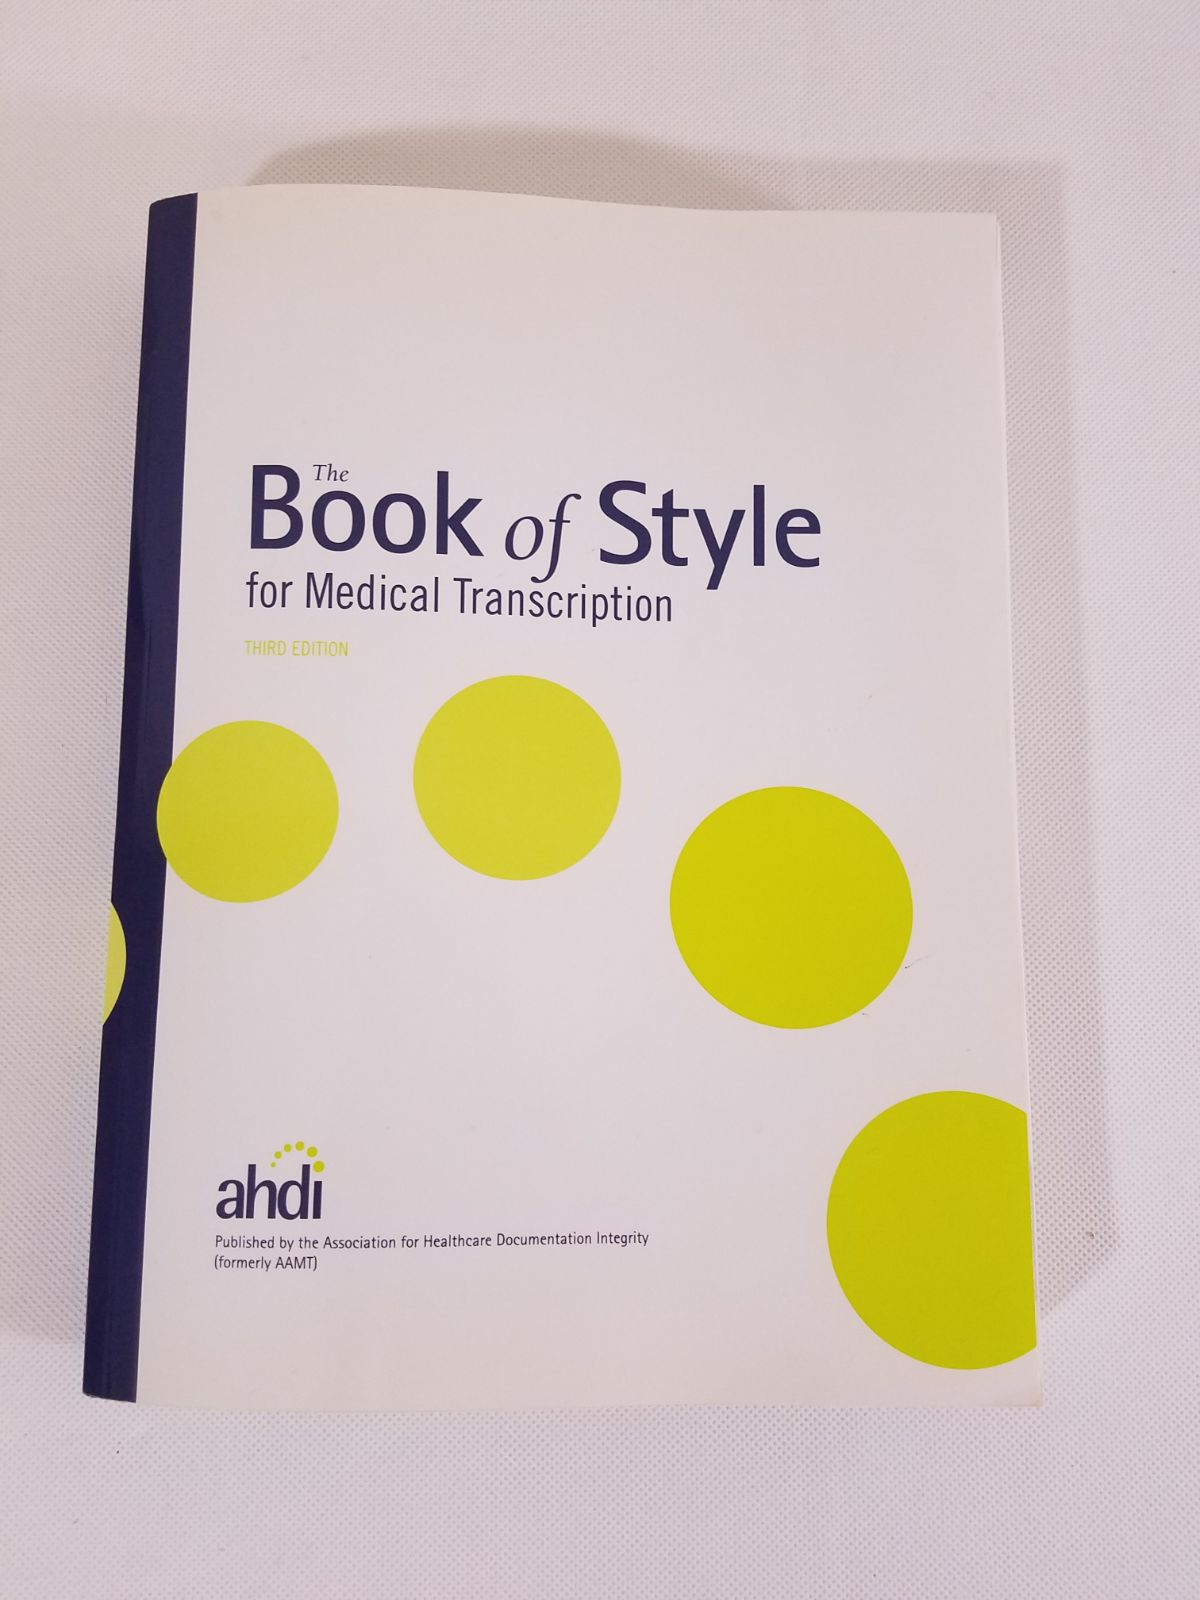 The Book of Style for Medical Transcript